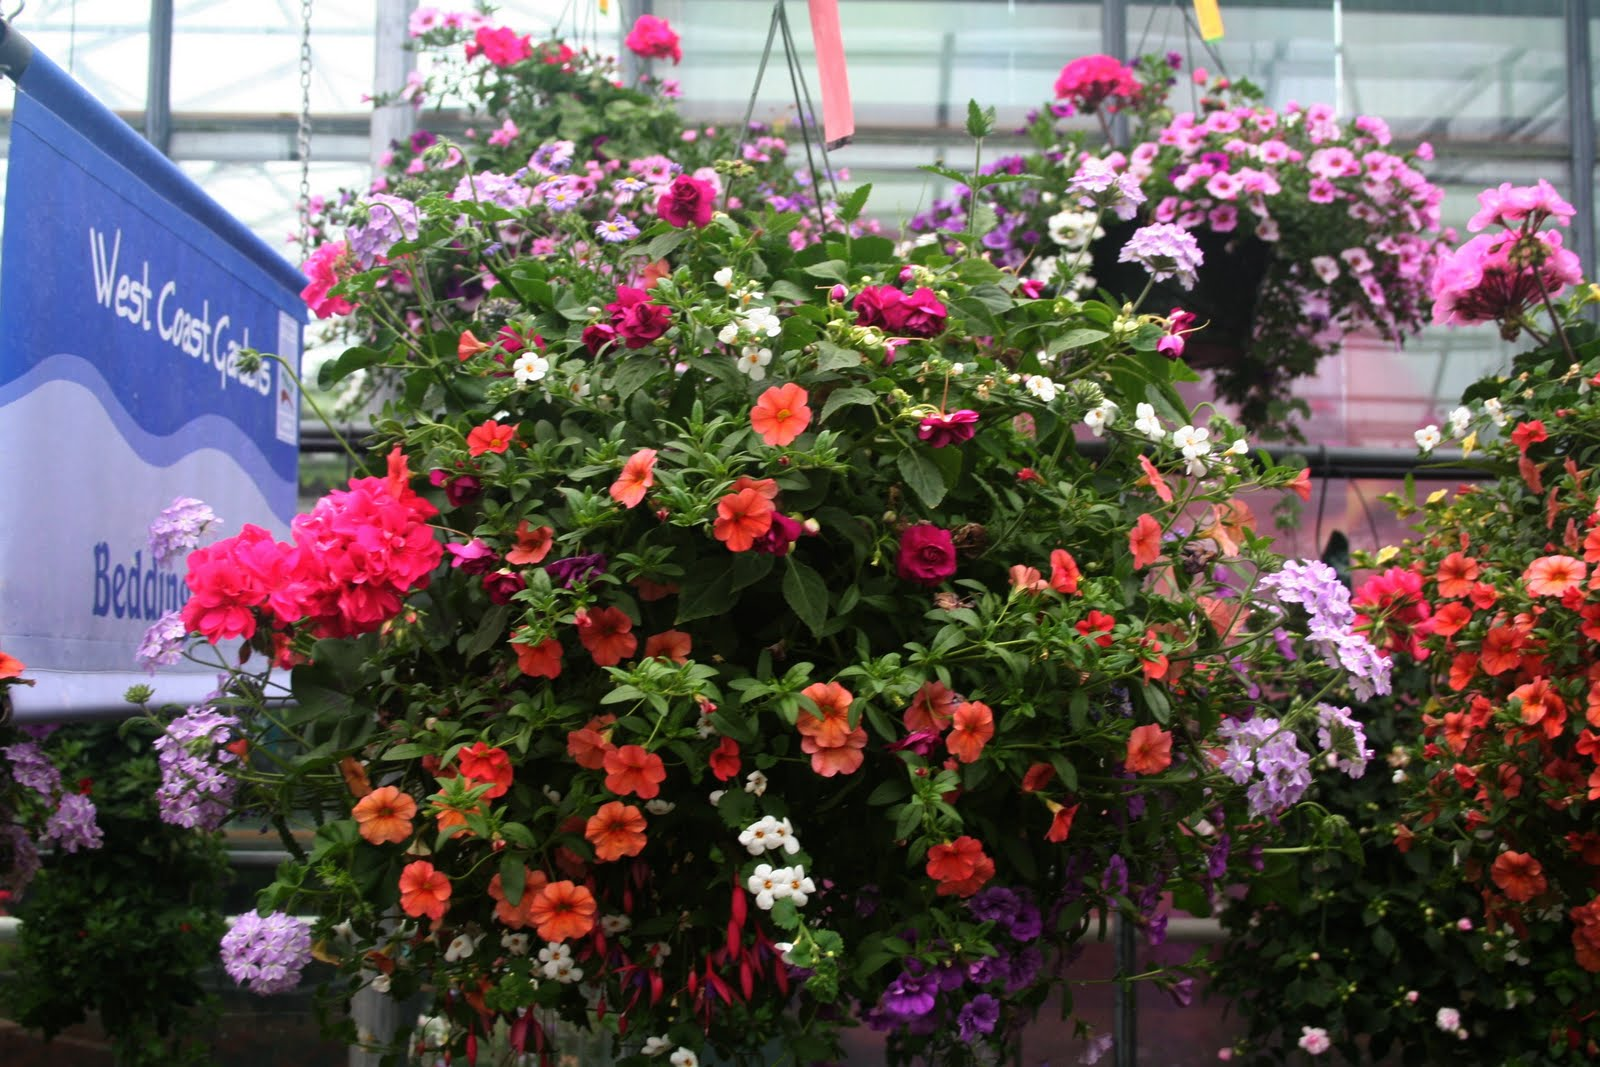 Flowers For Hanging Baskets In Part Shade : West coast gardens hanging baskets